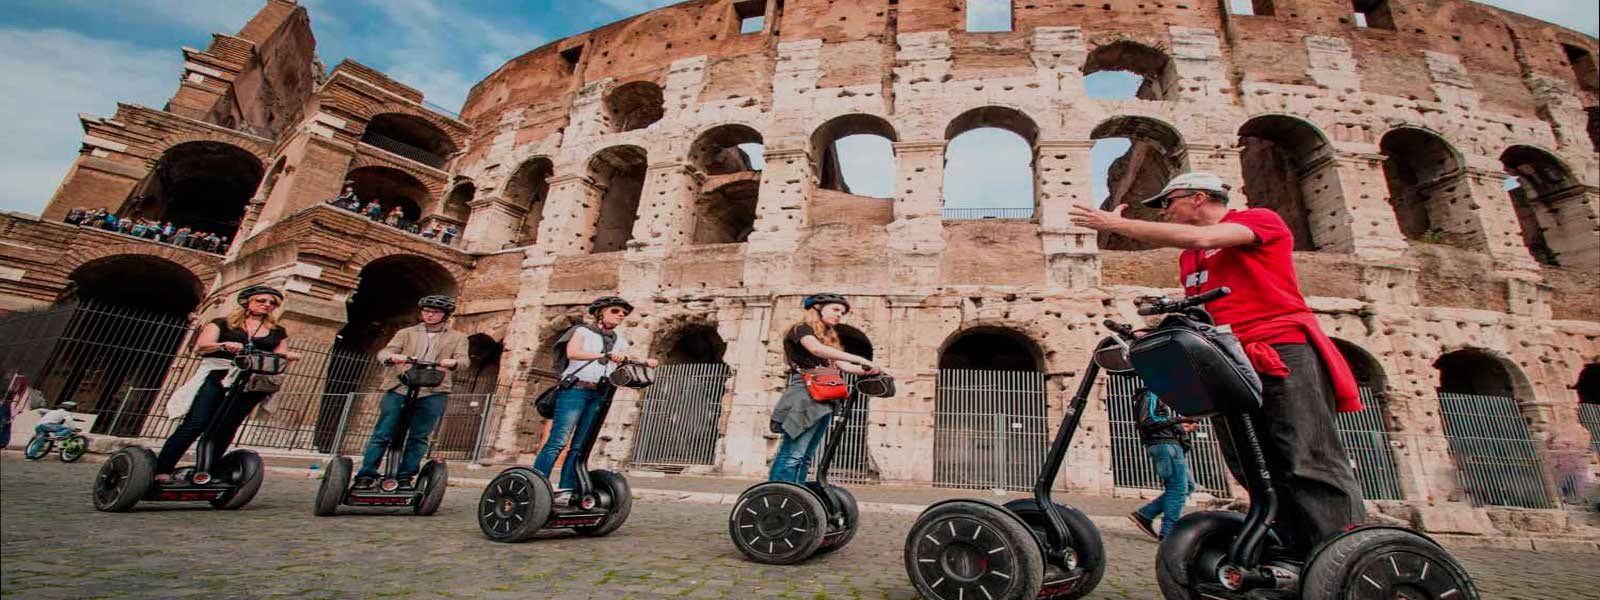 Segway Tour in Rome - mini group